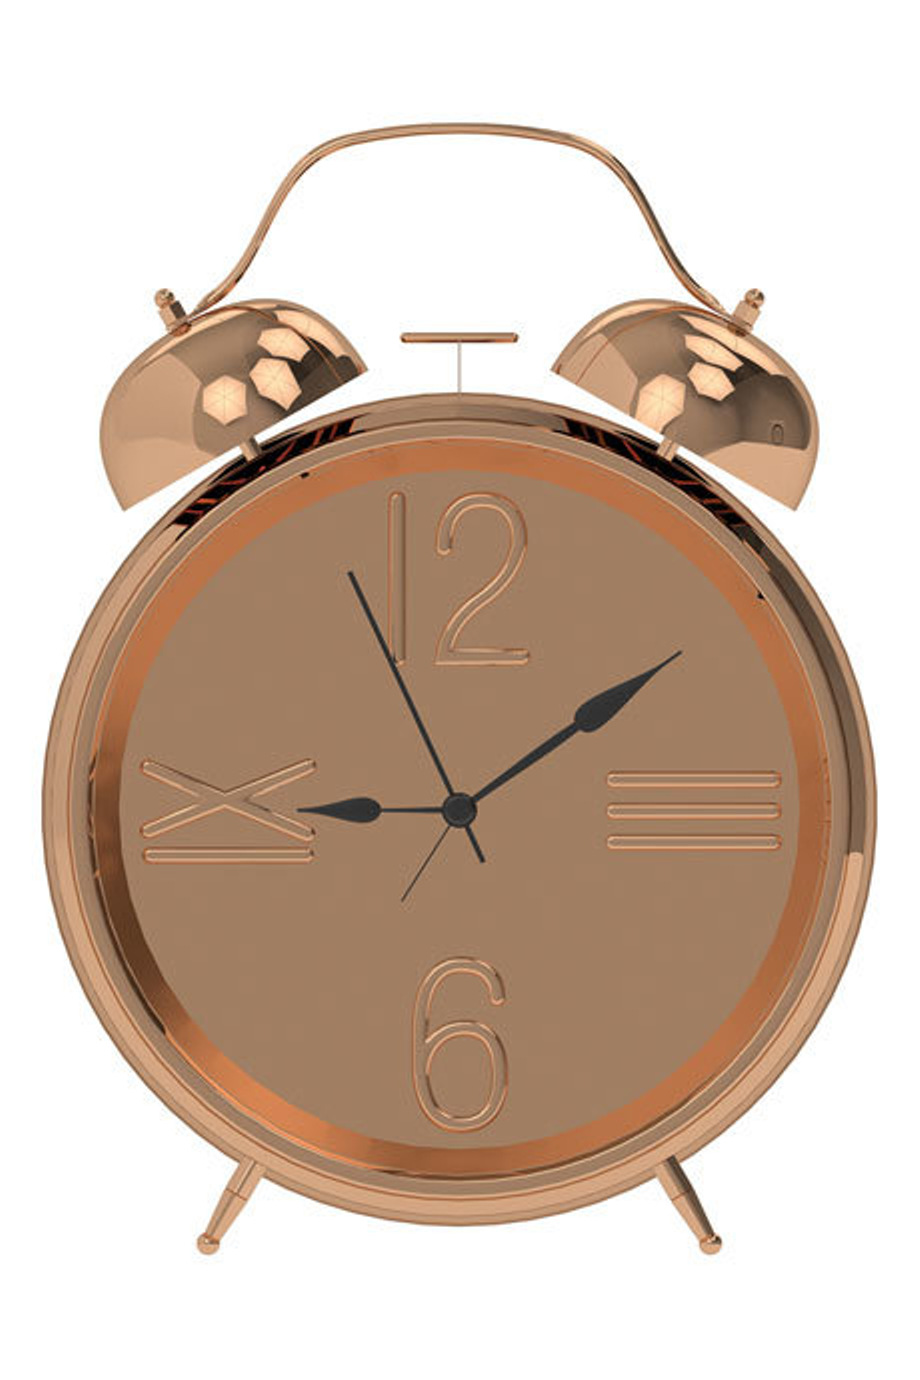 Salt Amp Pepper Zone 25cm Rose Gold Alarm Clock Myer Online